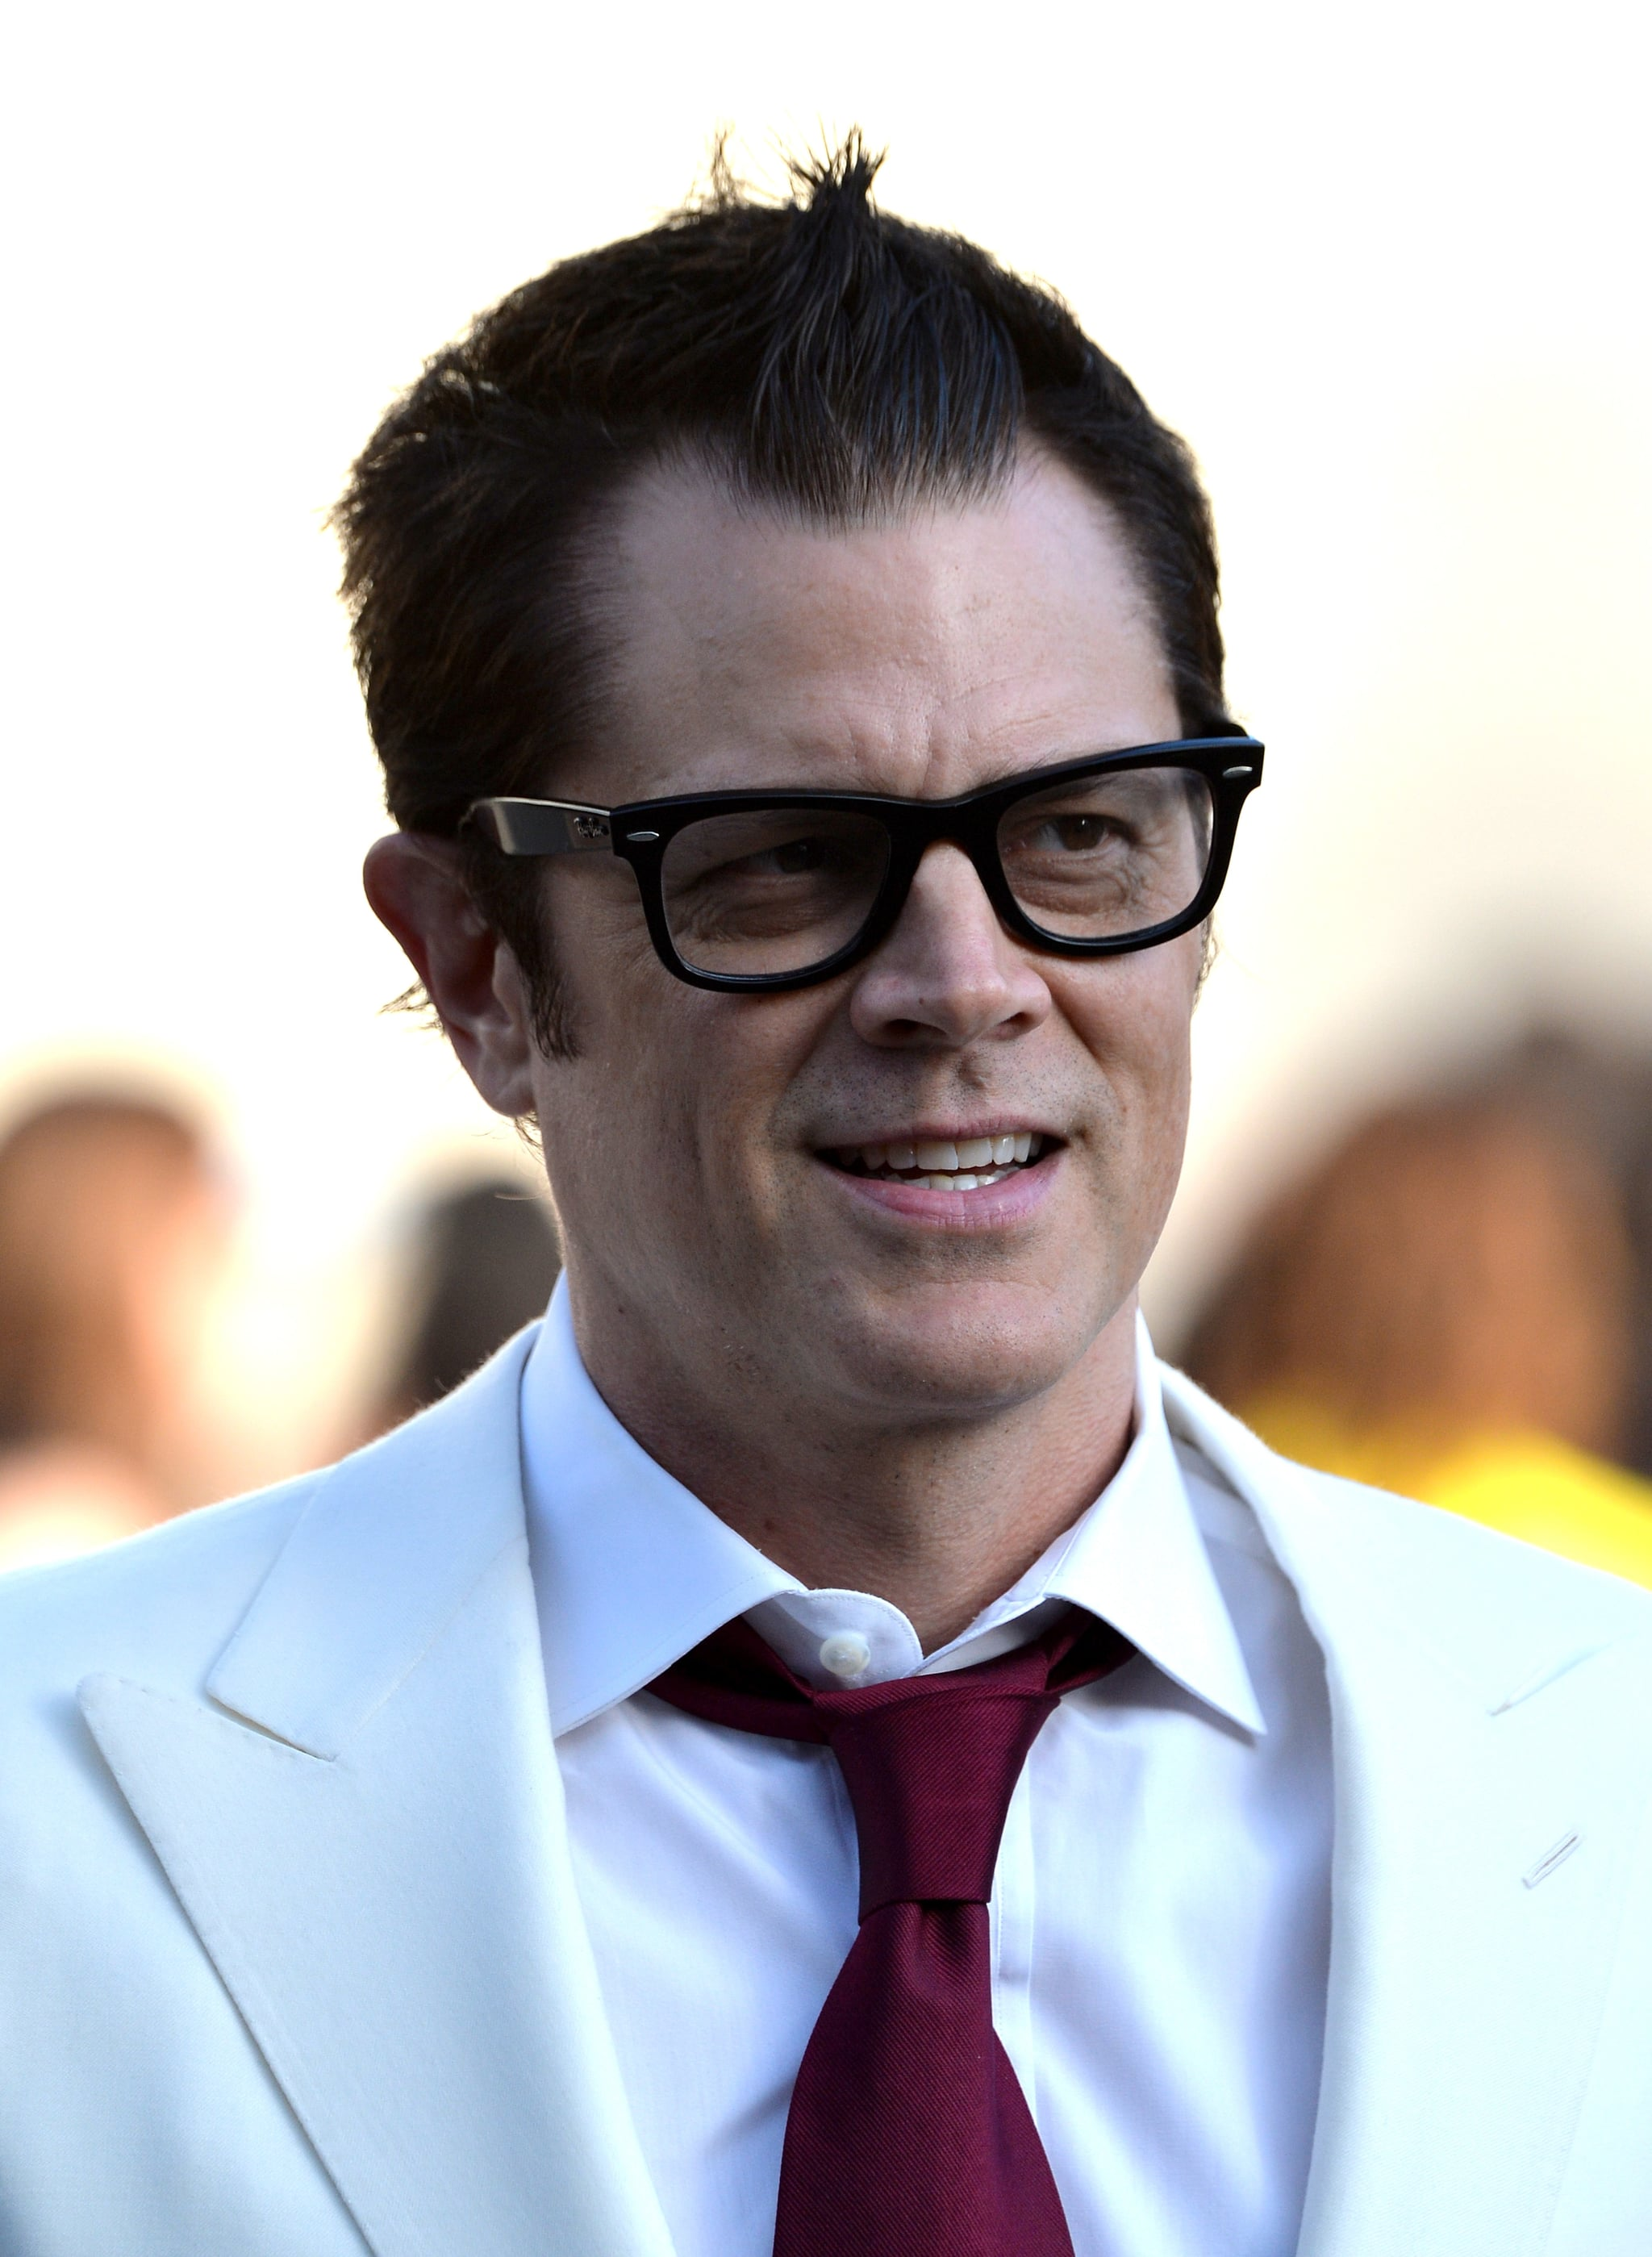 Johnny Knoxville popped up at the event.